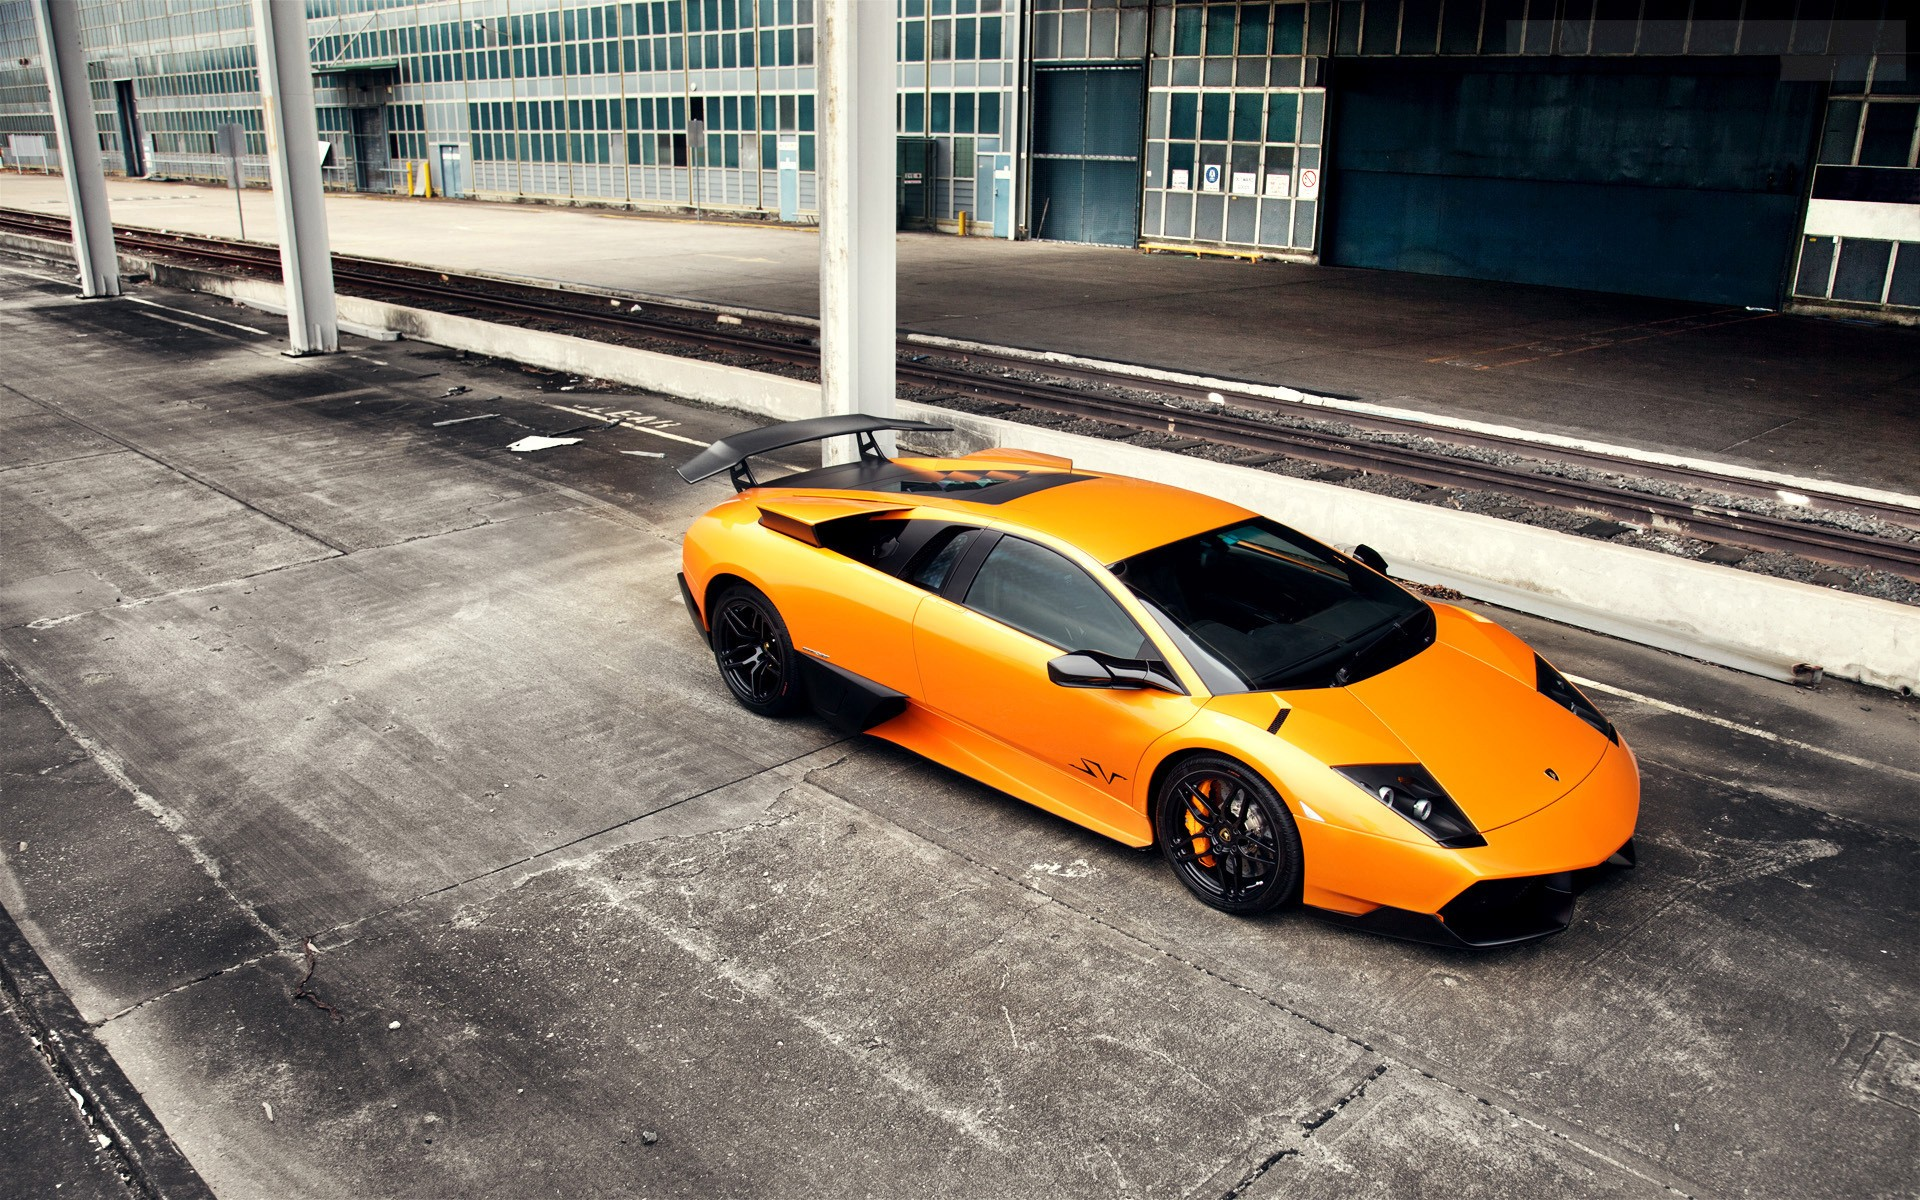 Orange Lamborghini Murcielago SV wallpapers | Orange ...